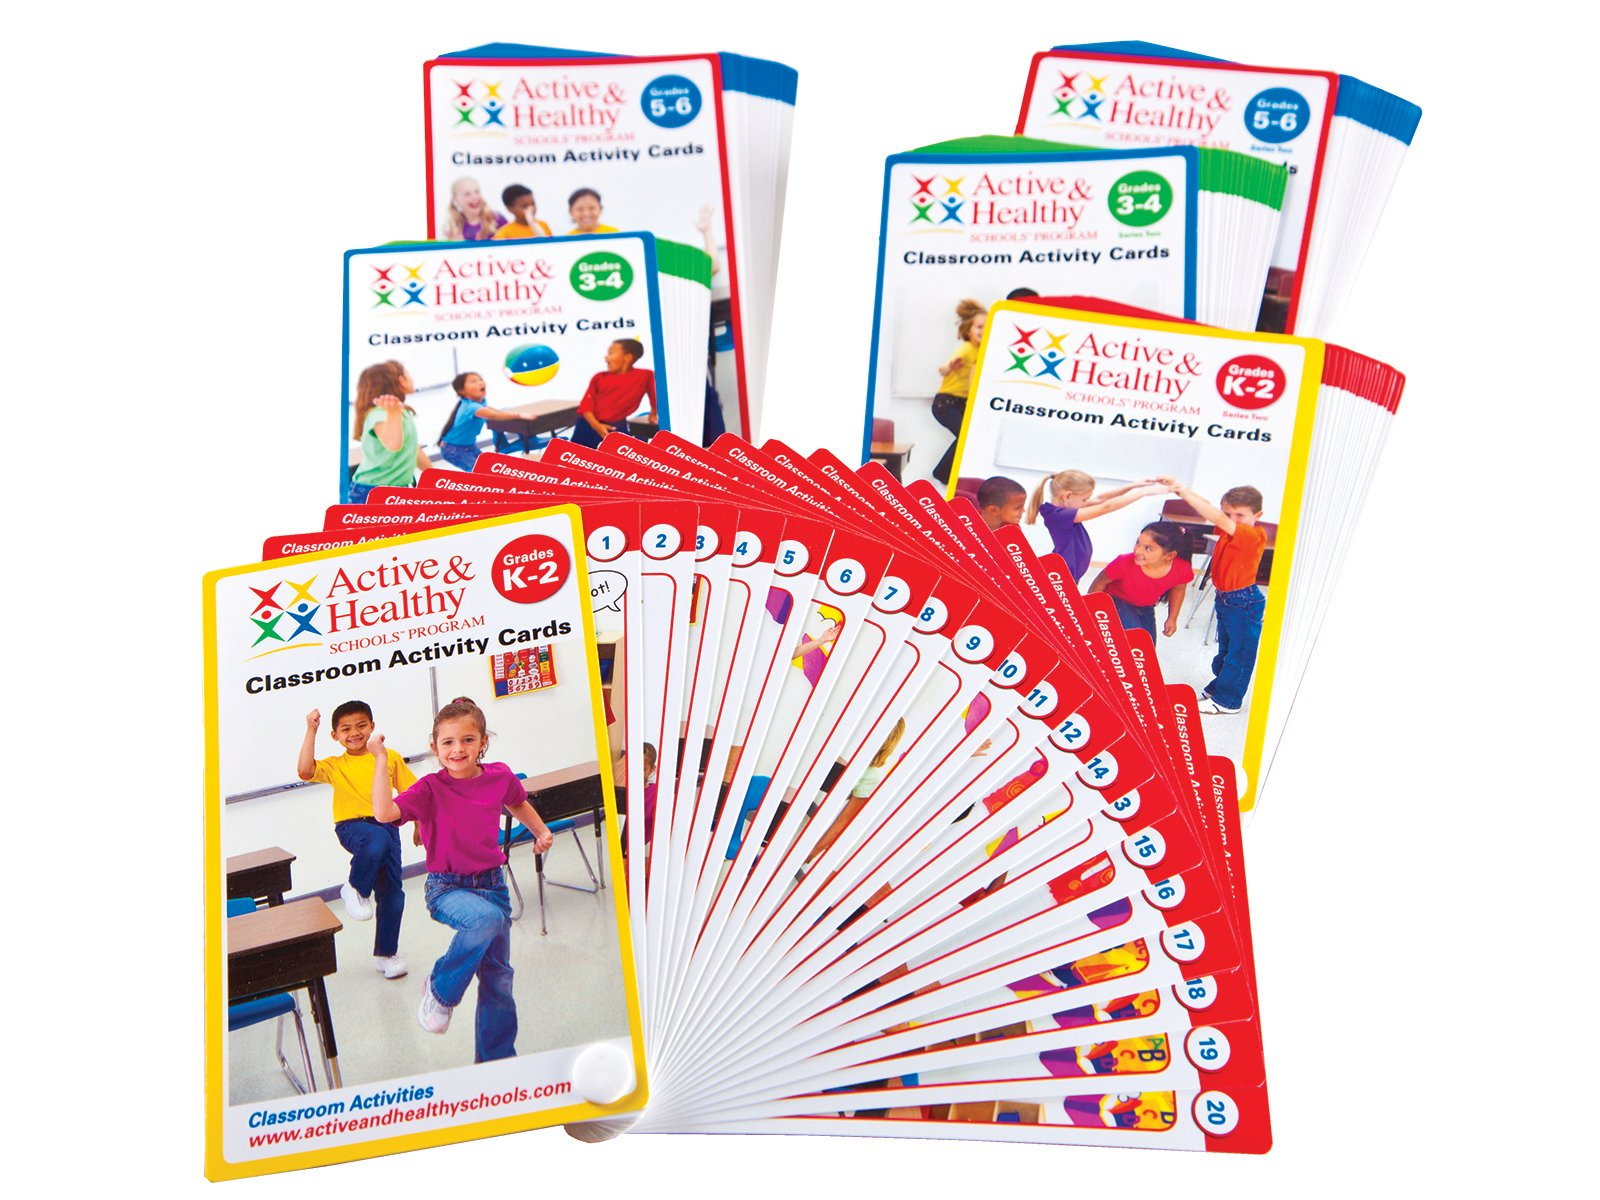 Classroom activity cards sets for different ages